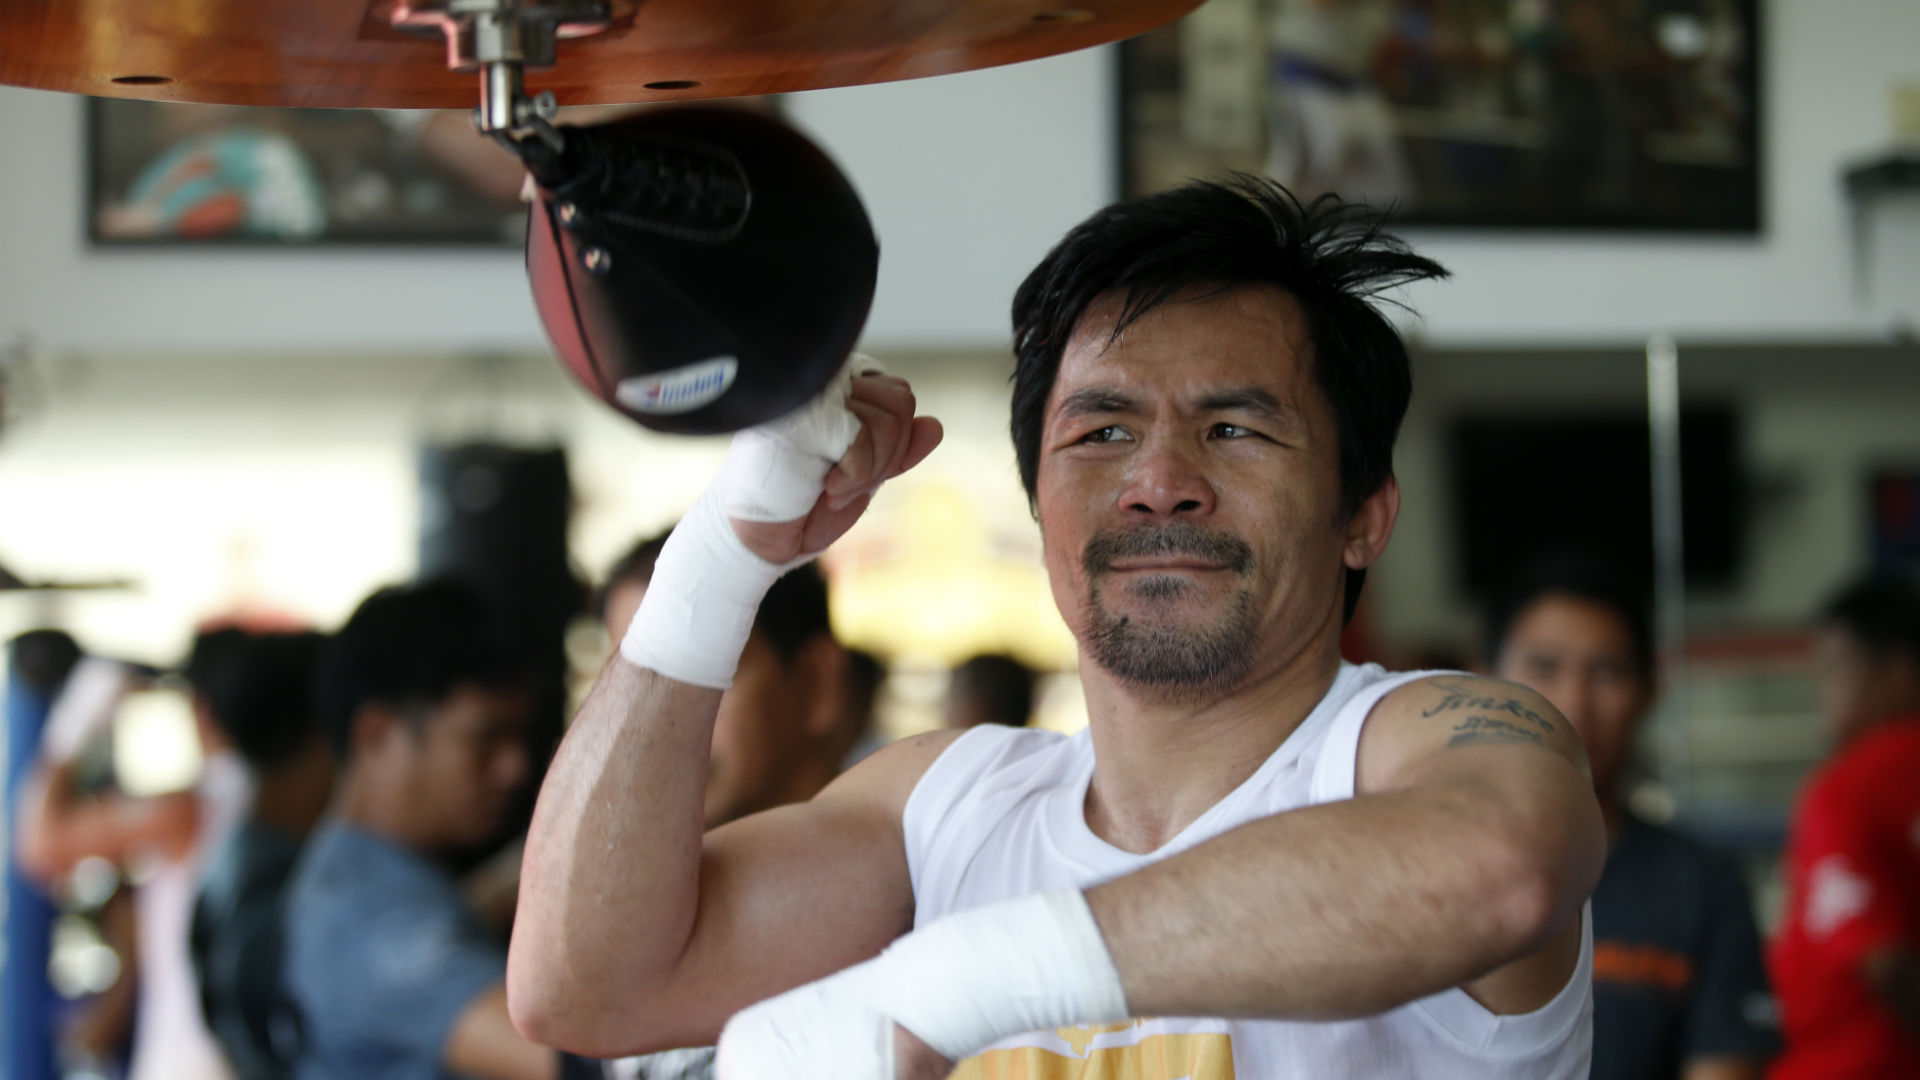 Champ Matthysse ups the ante ahead of fight with Pacquiao